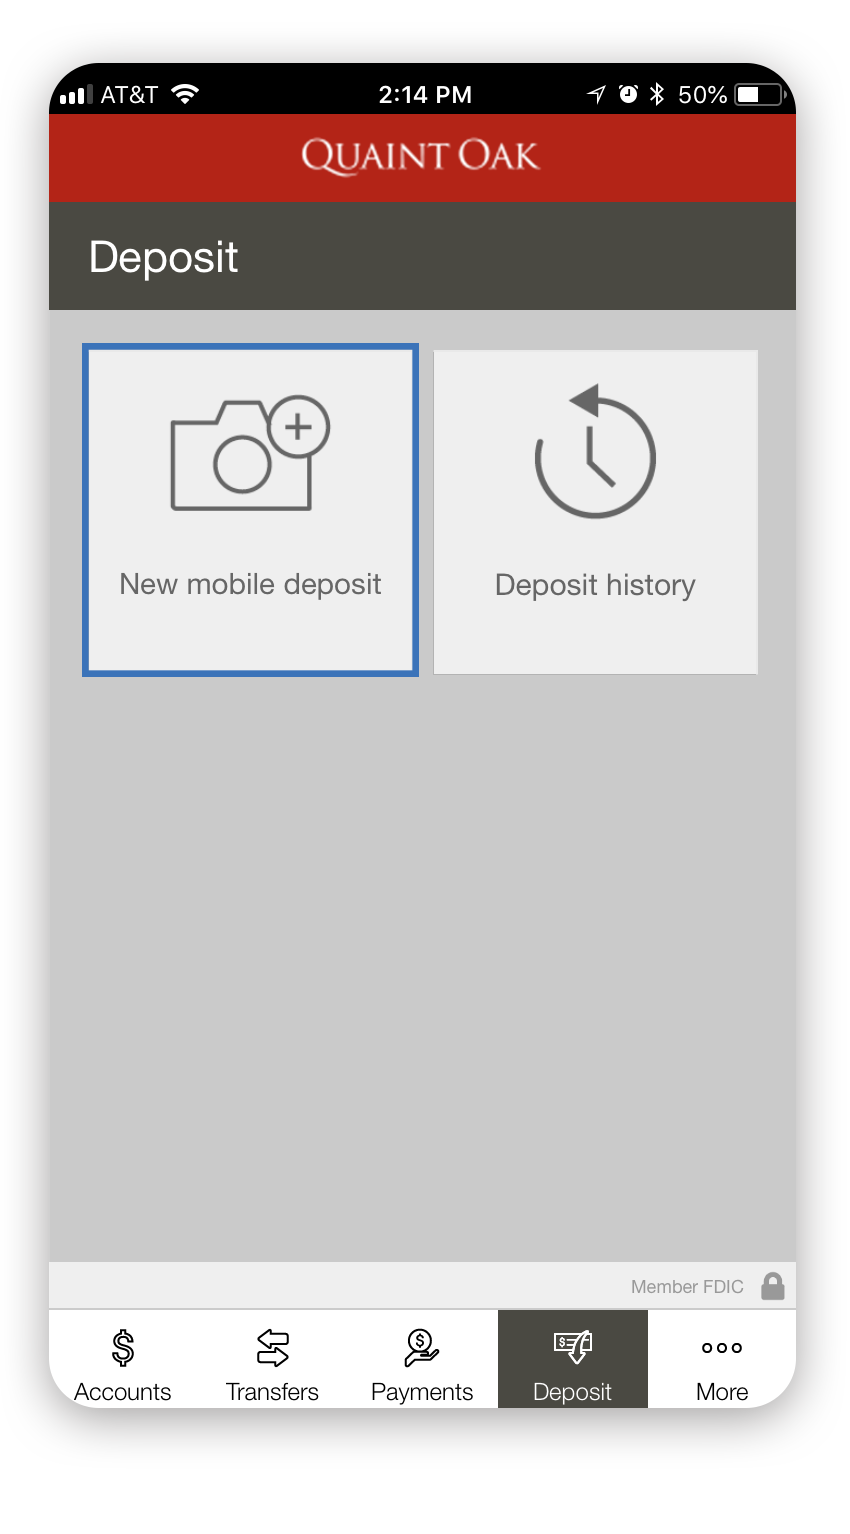 Quaint Oak Bank Mobile App Deposit Options